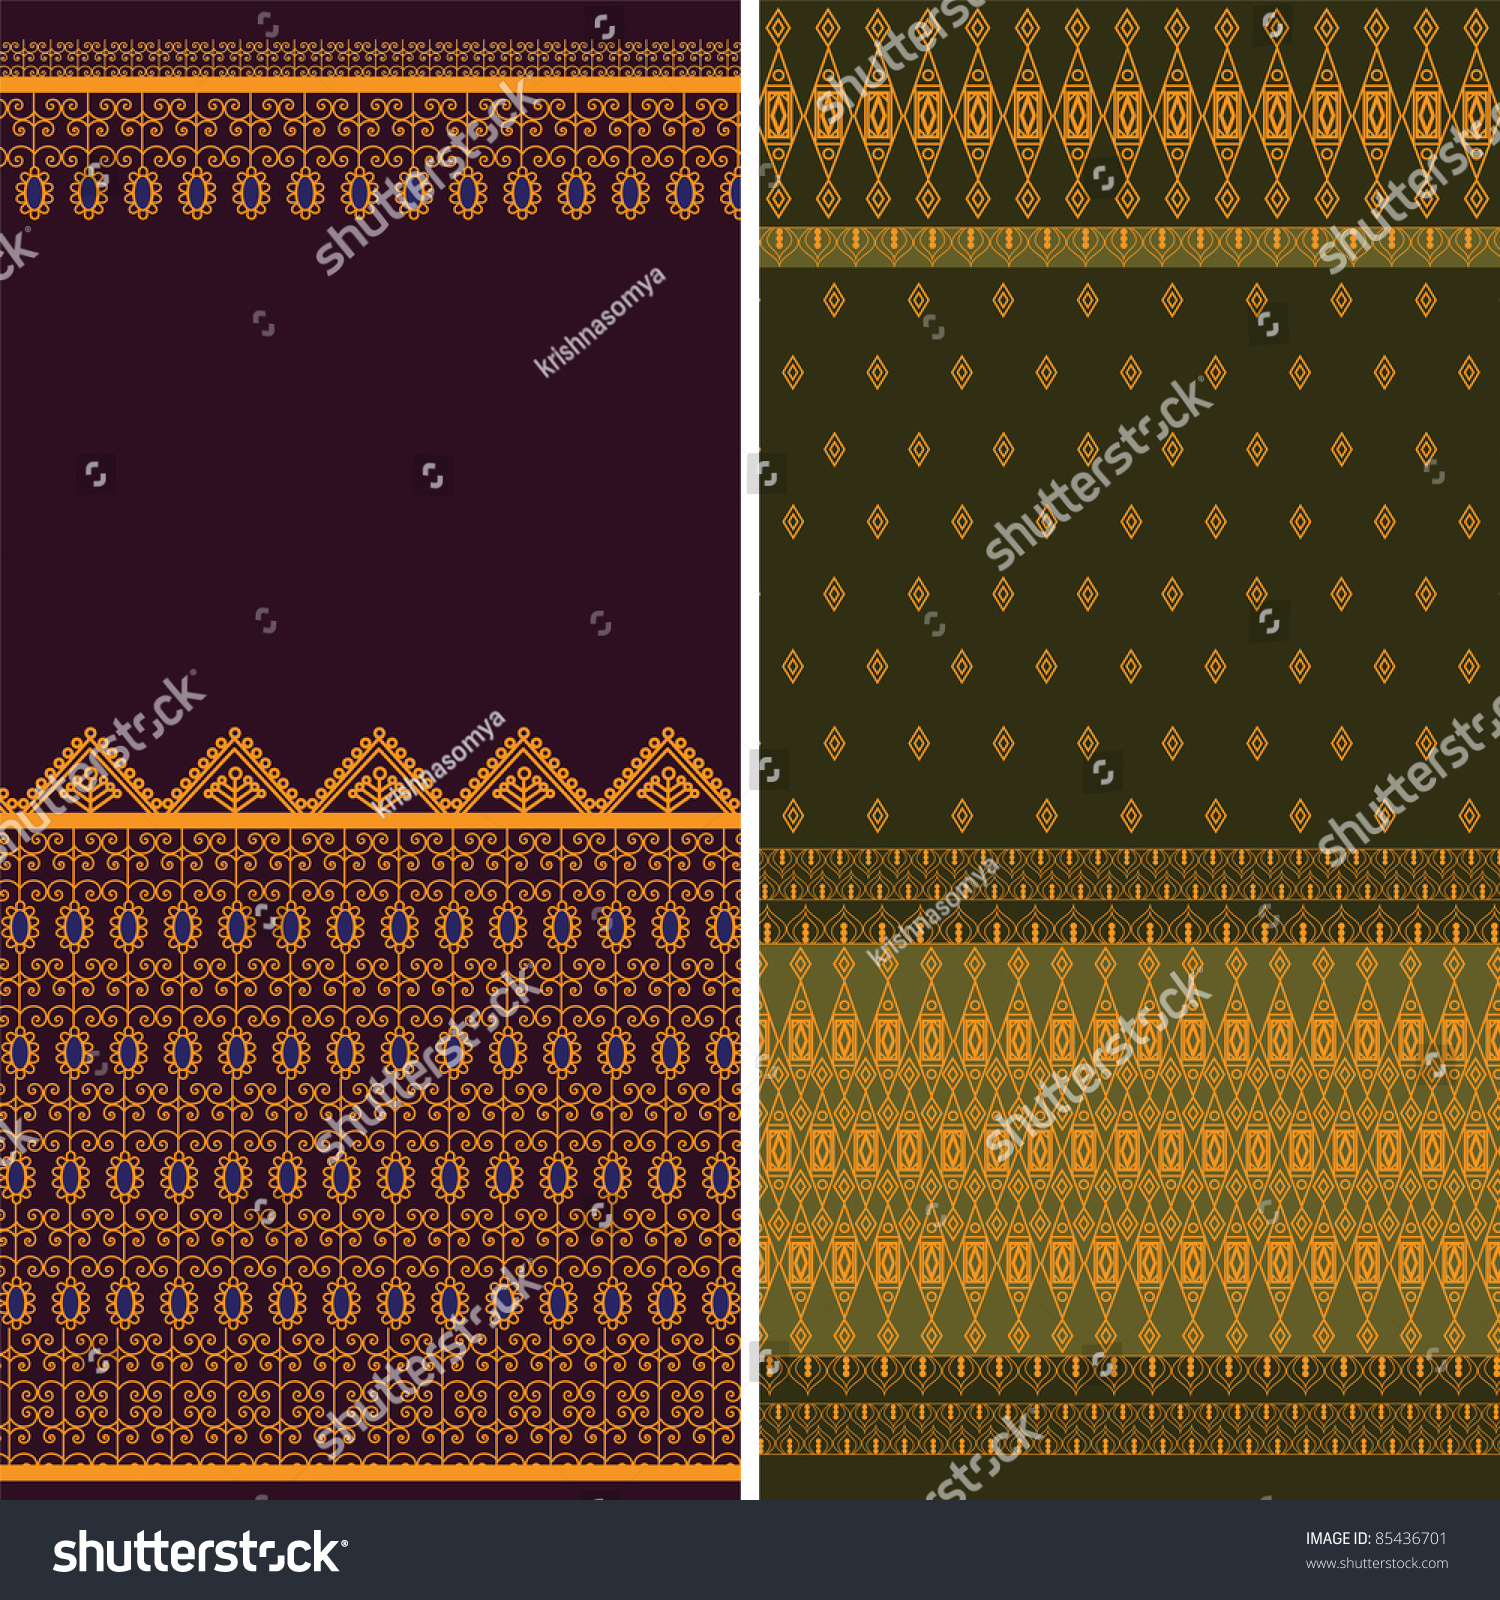 Indian Sari Borders detailed and easily editable